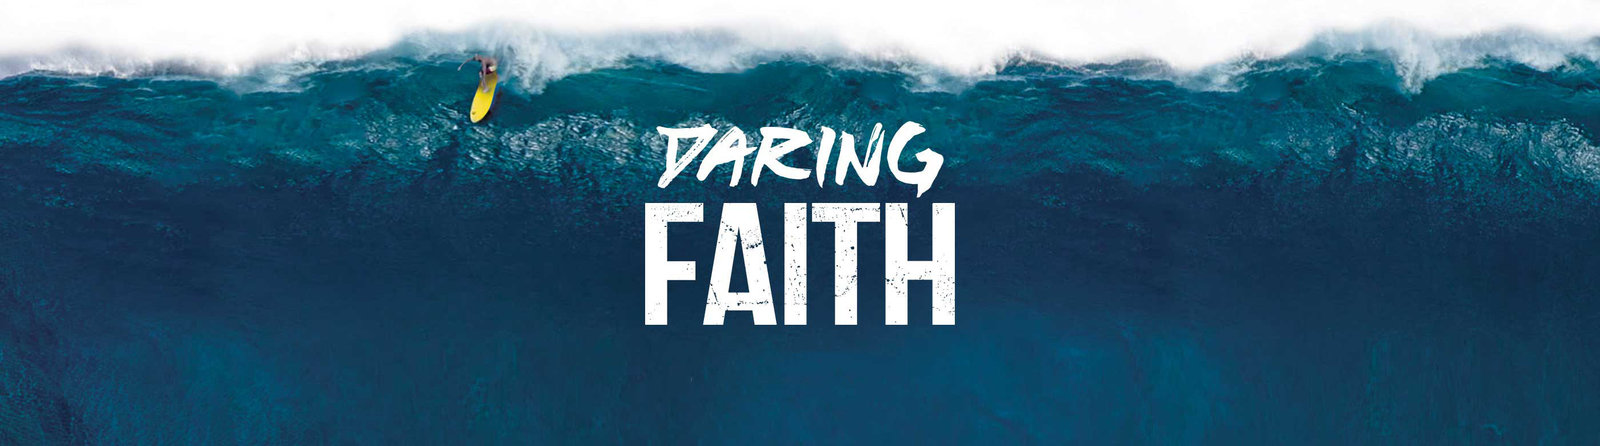 DaringFaith_WebHeader_May